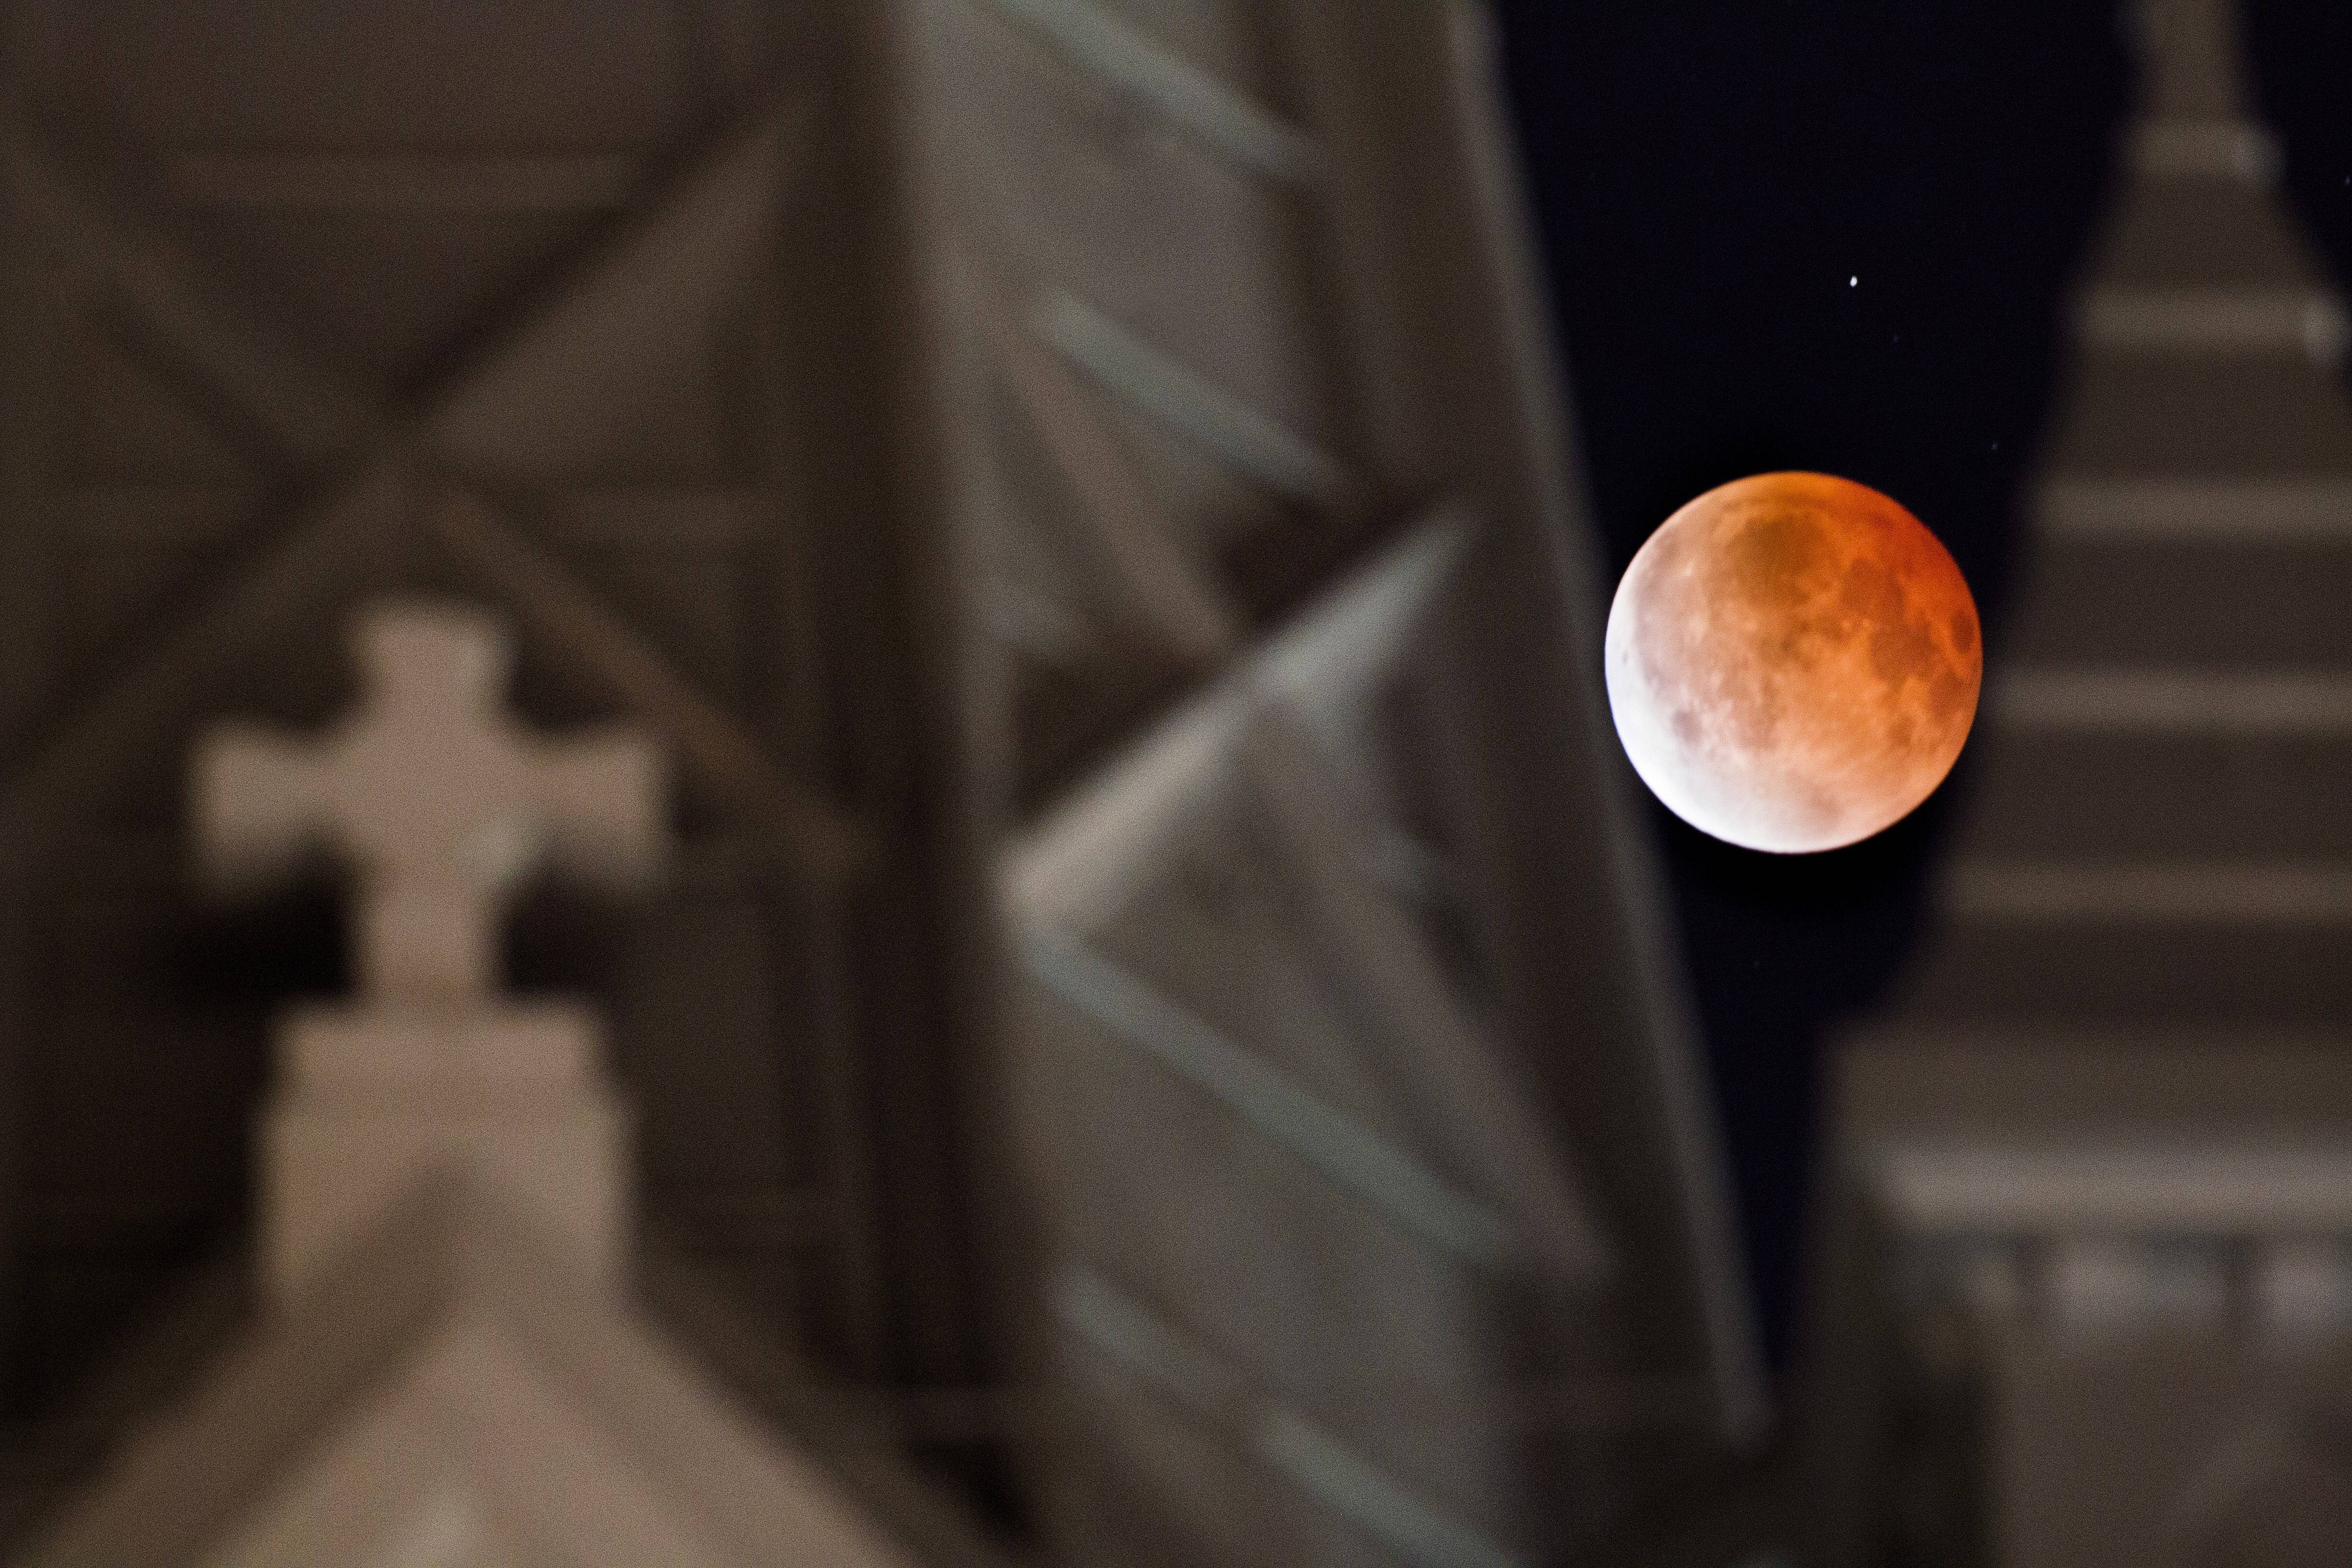 'Blood moon' in the morning: Best times to look